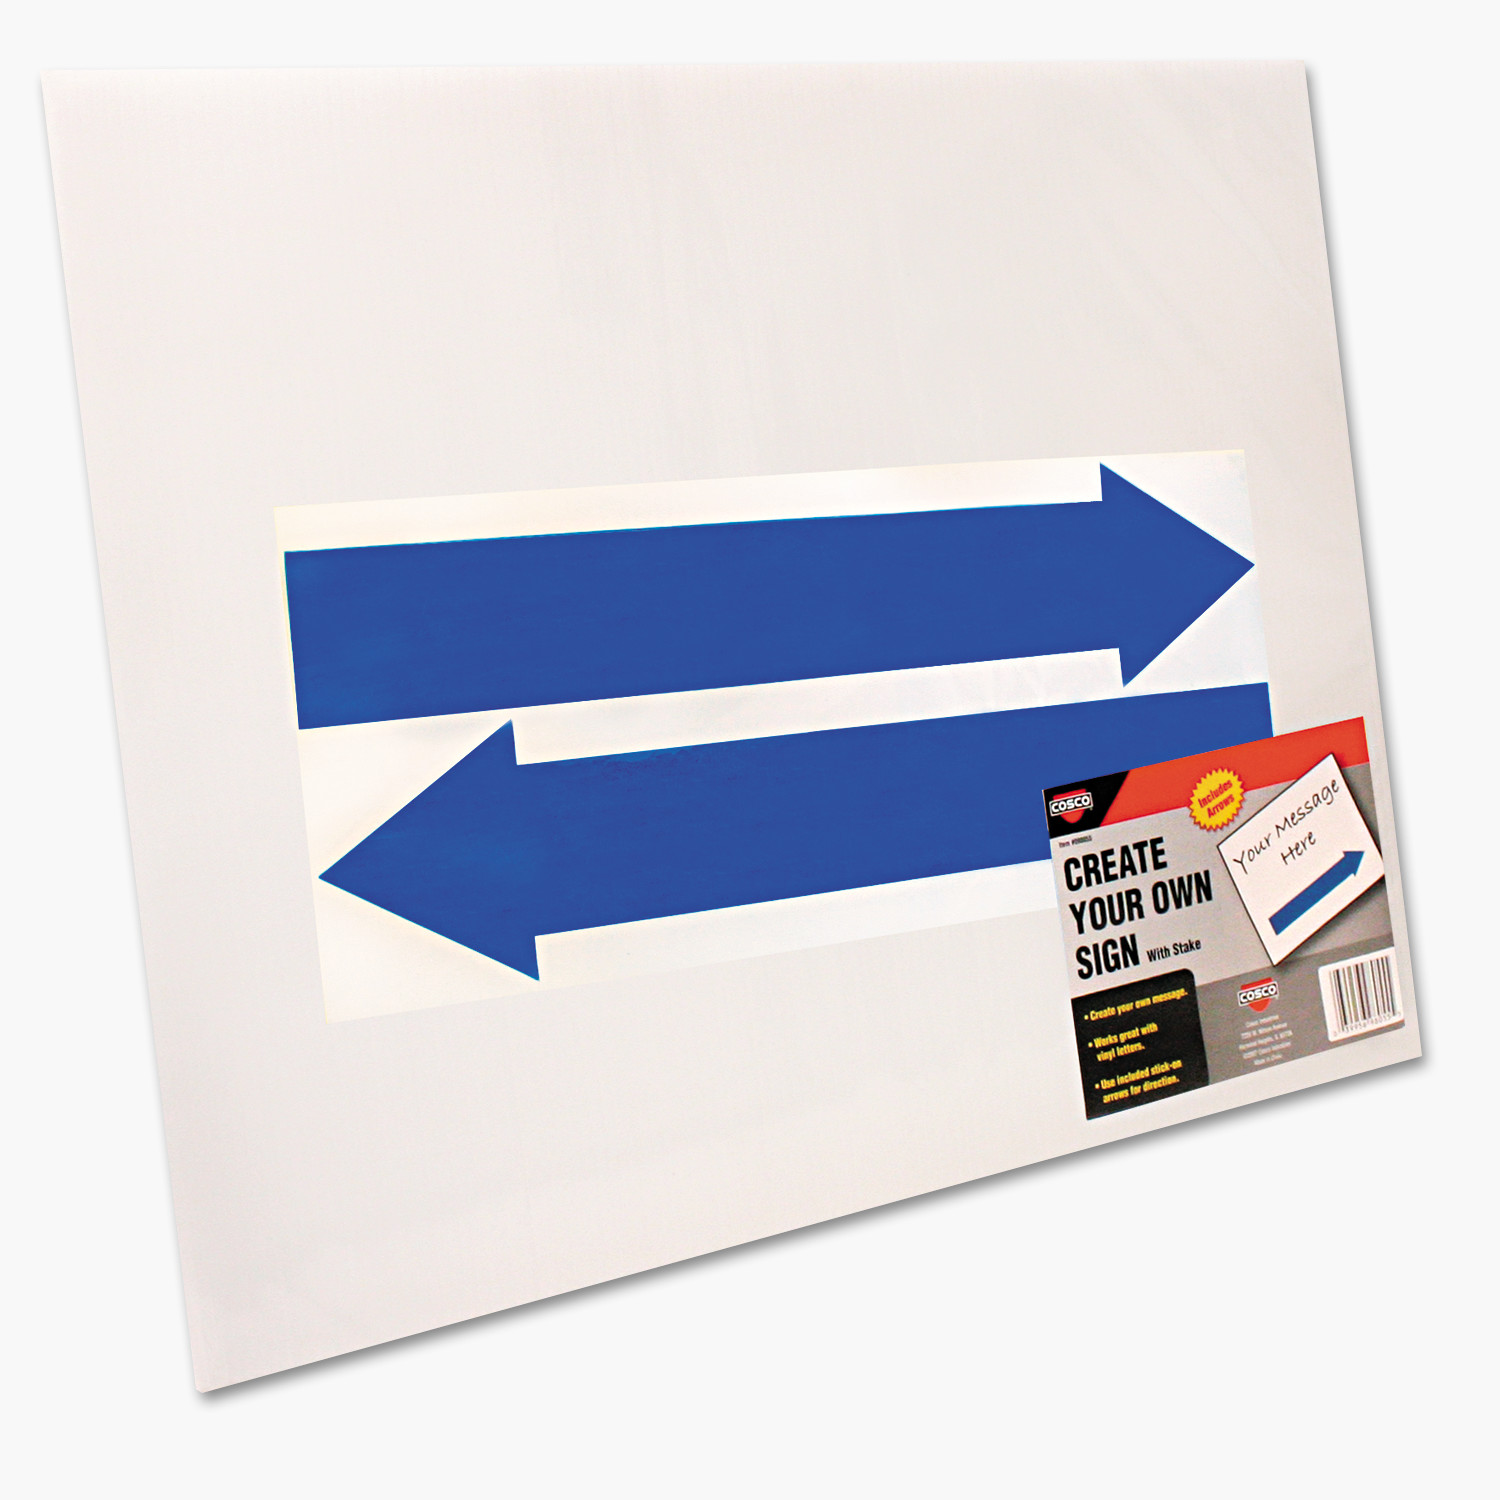 COSCO Stake Sign, Blank White, Includes Directional Arrows, 15 x 19 -COS098055